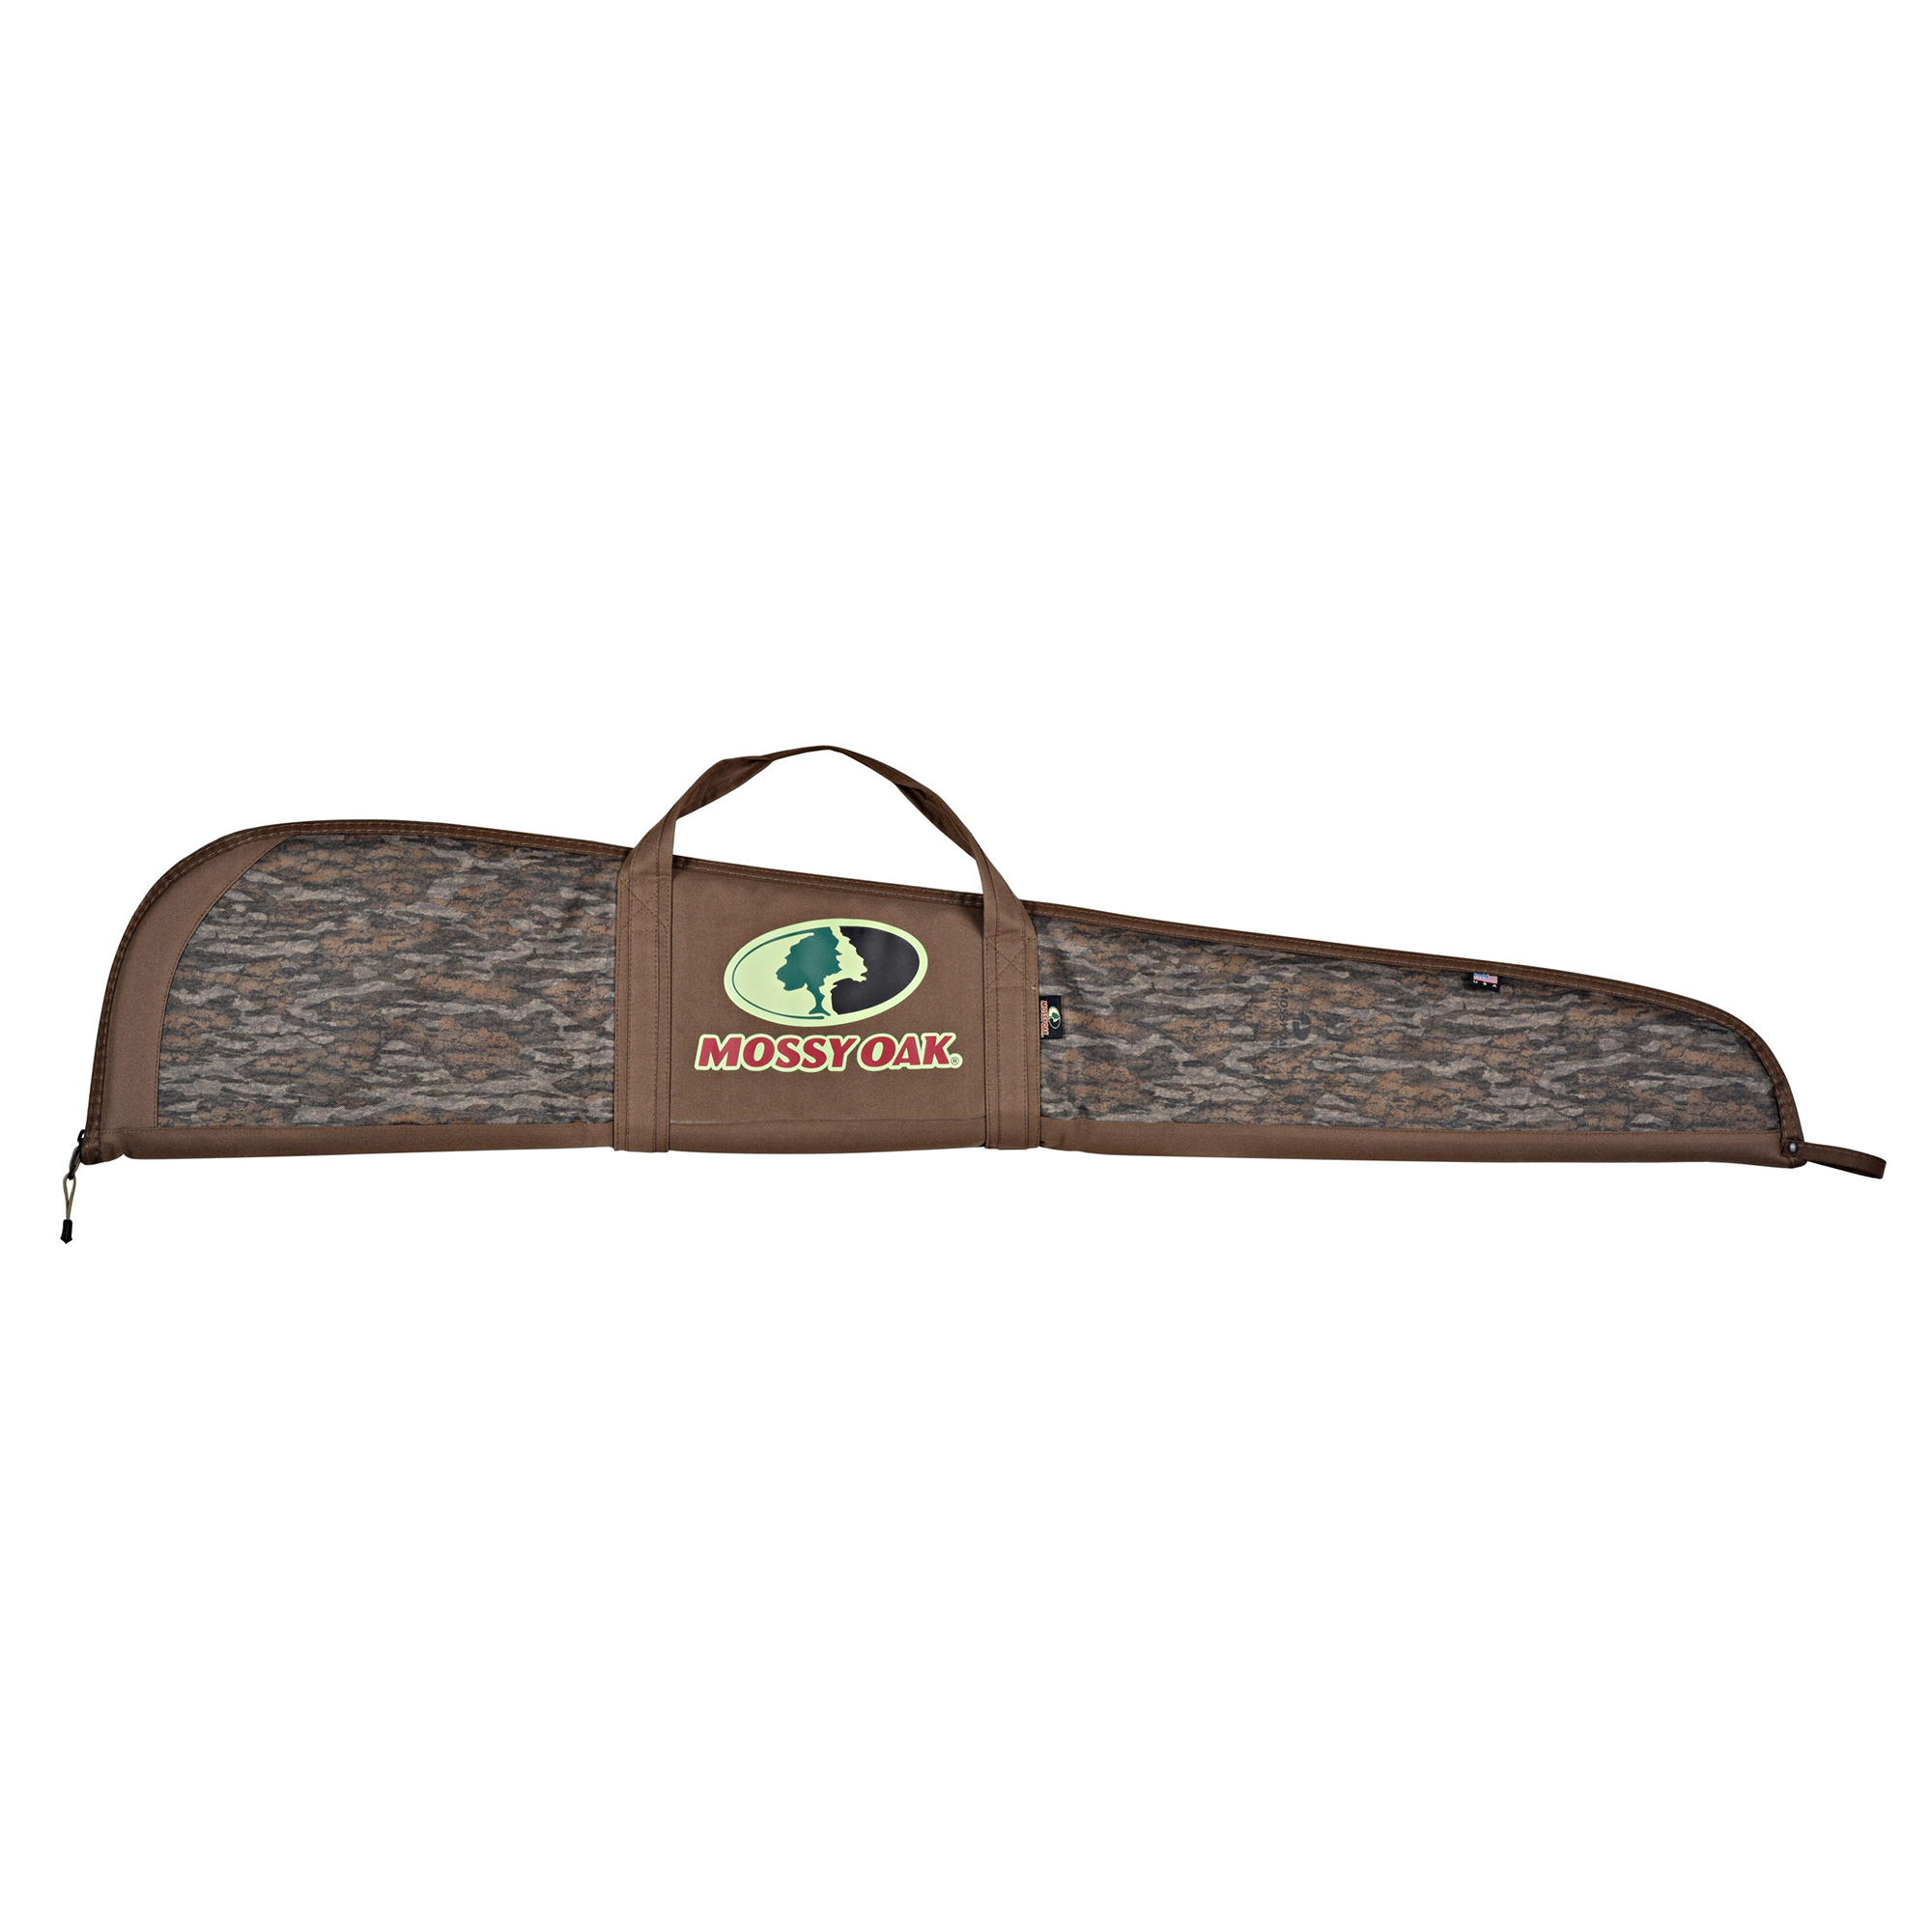 Mossy Oak Yazoo2 Rifle Case, 48″